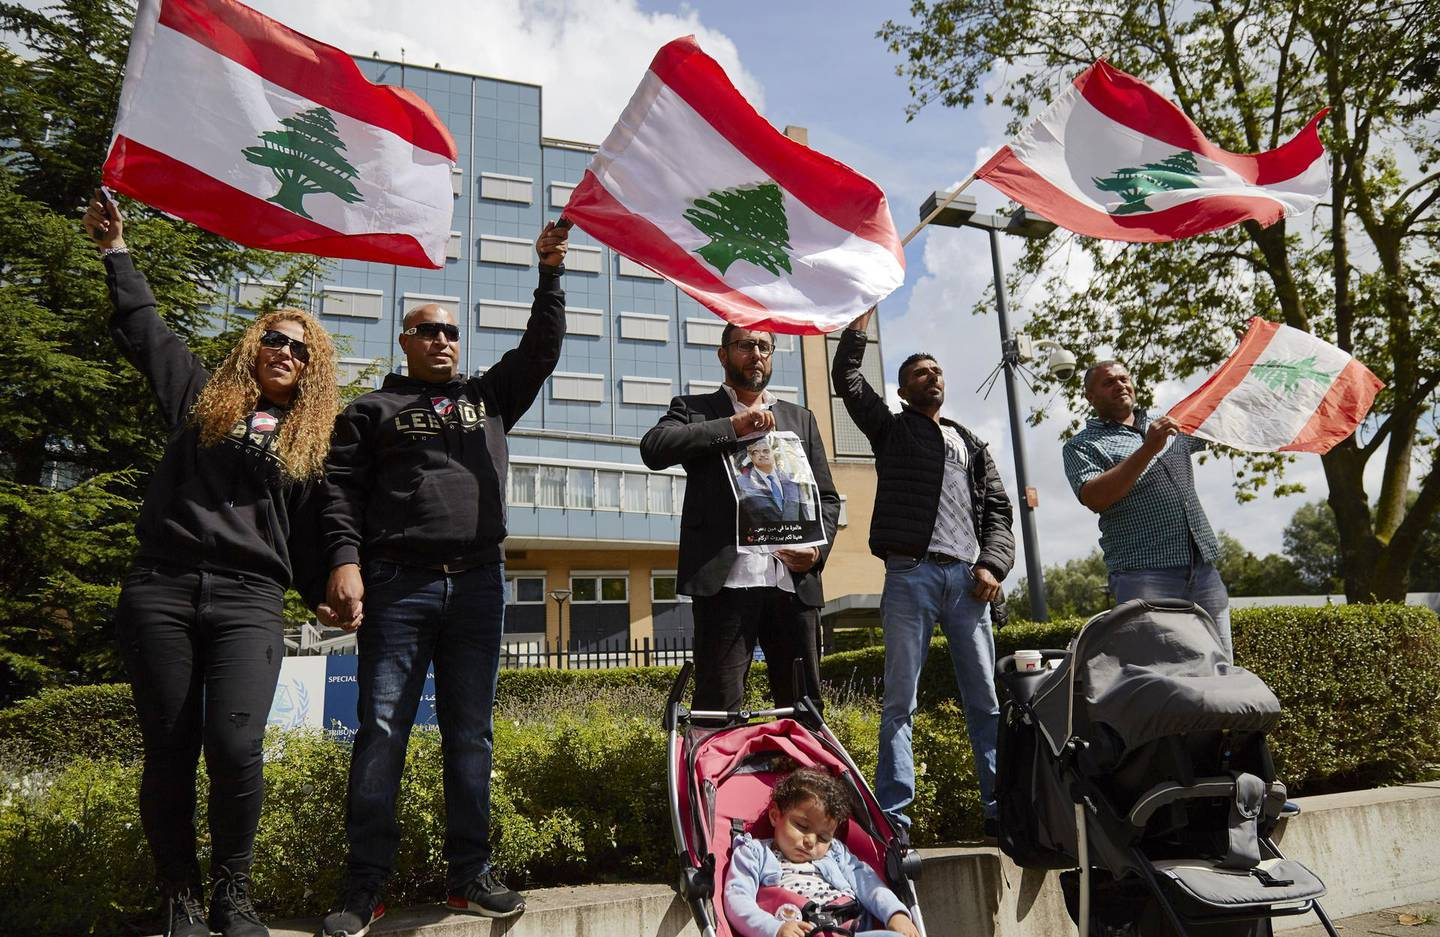 THE HAGUE, NETHERLANDS - AUGUST 18: Supporters of former Prime Minister Rafiq Hariri wave Lebanese flags outside the Lebanon Tribunal on August 18, 2020 in The Hague, Netherlands. The Special Tribunal for Lebanon must render its verdict on the trial of four men accused of participating in the 2005 assassination of former Lebanese Prime Minister Rafic Hariri. (Photo by Pierre Crom/Getty Images)